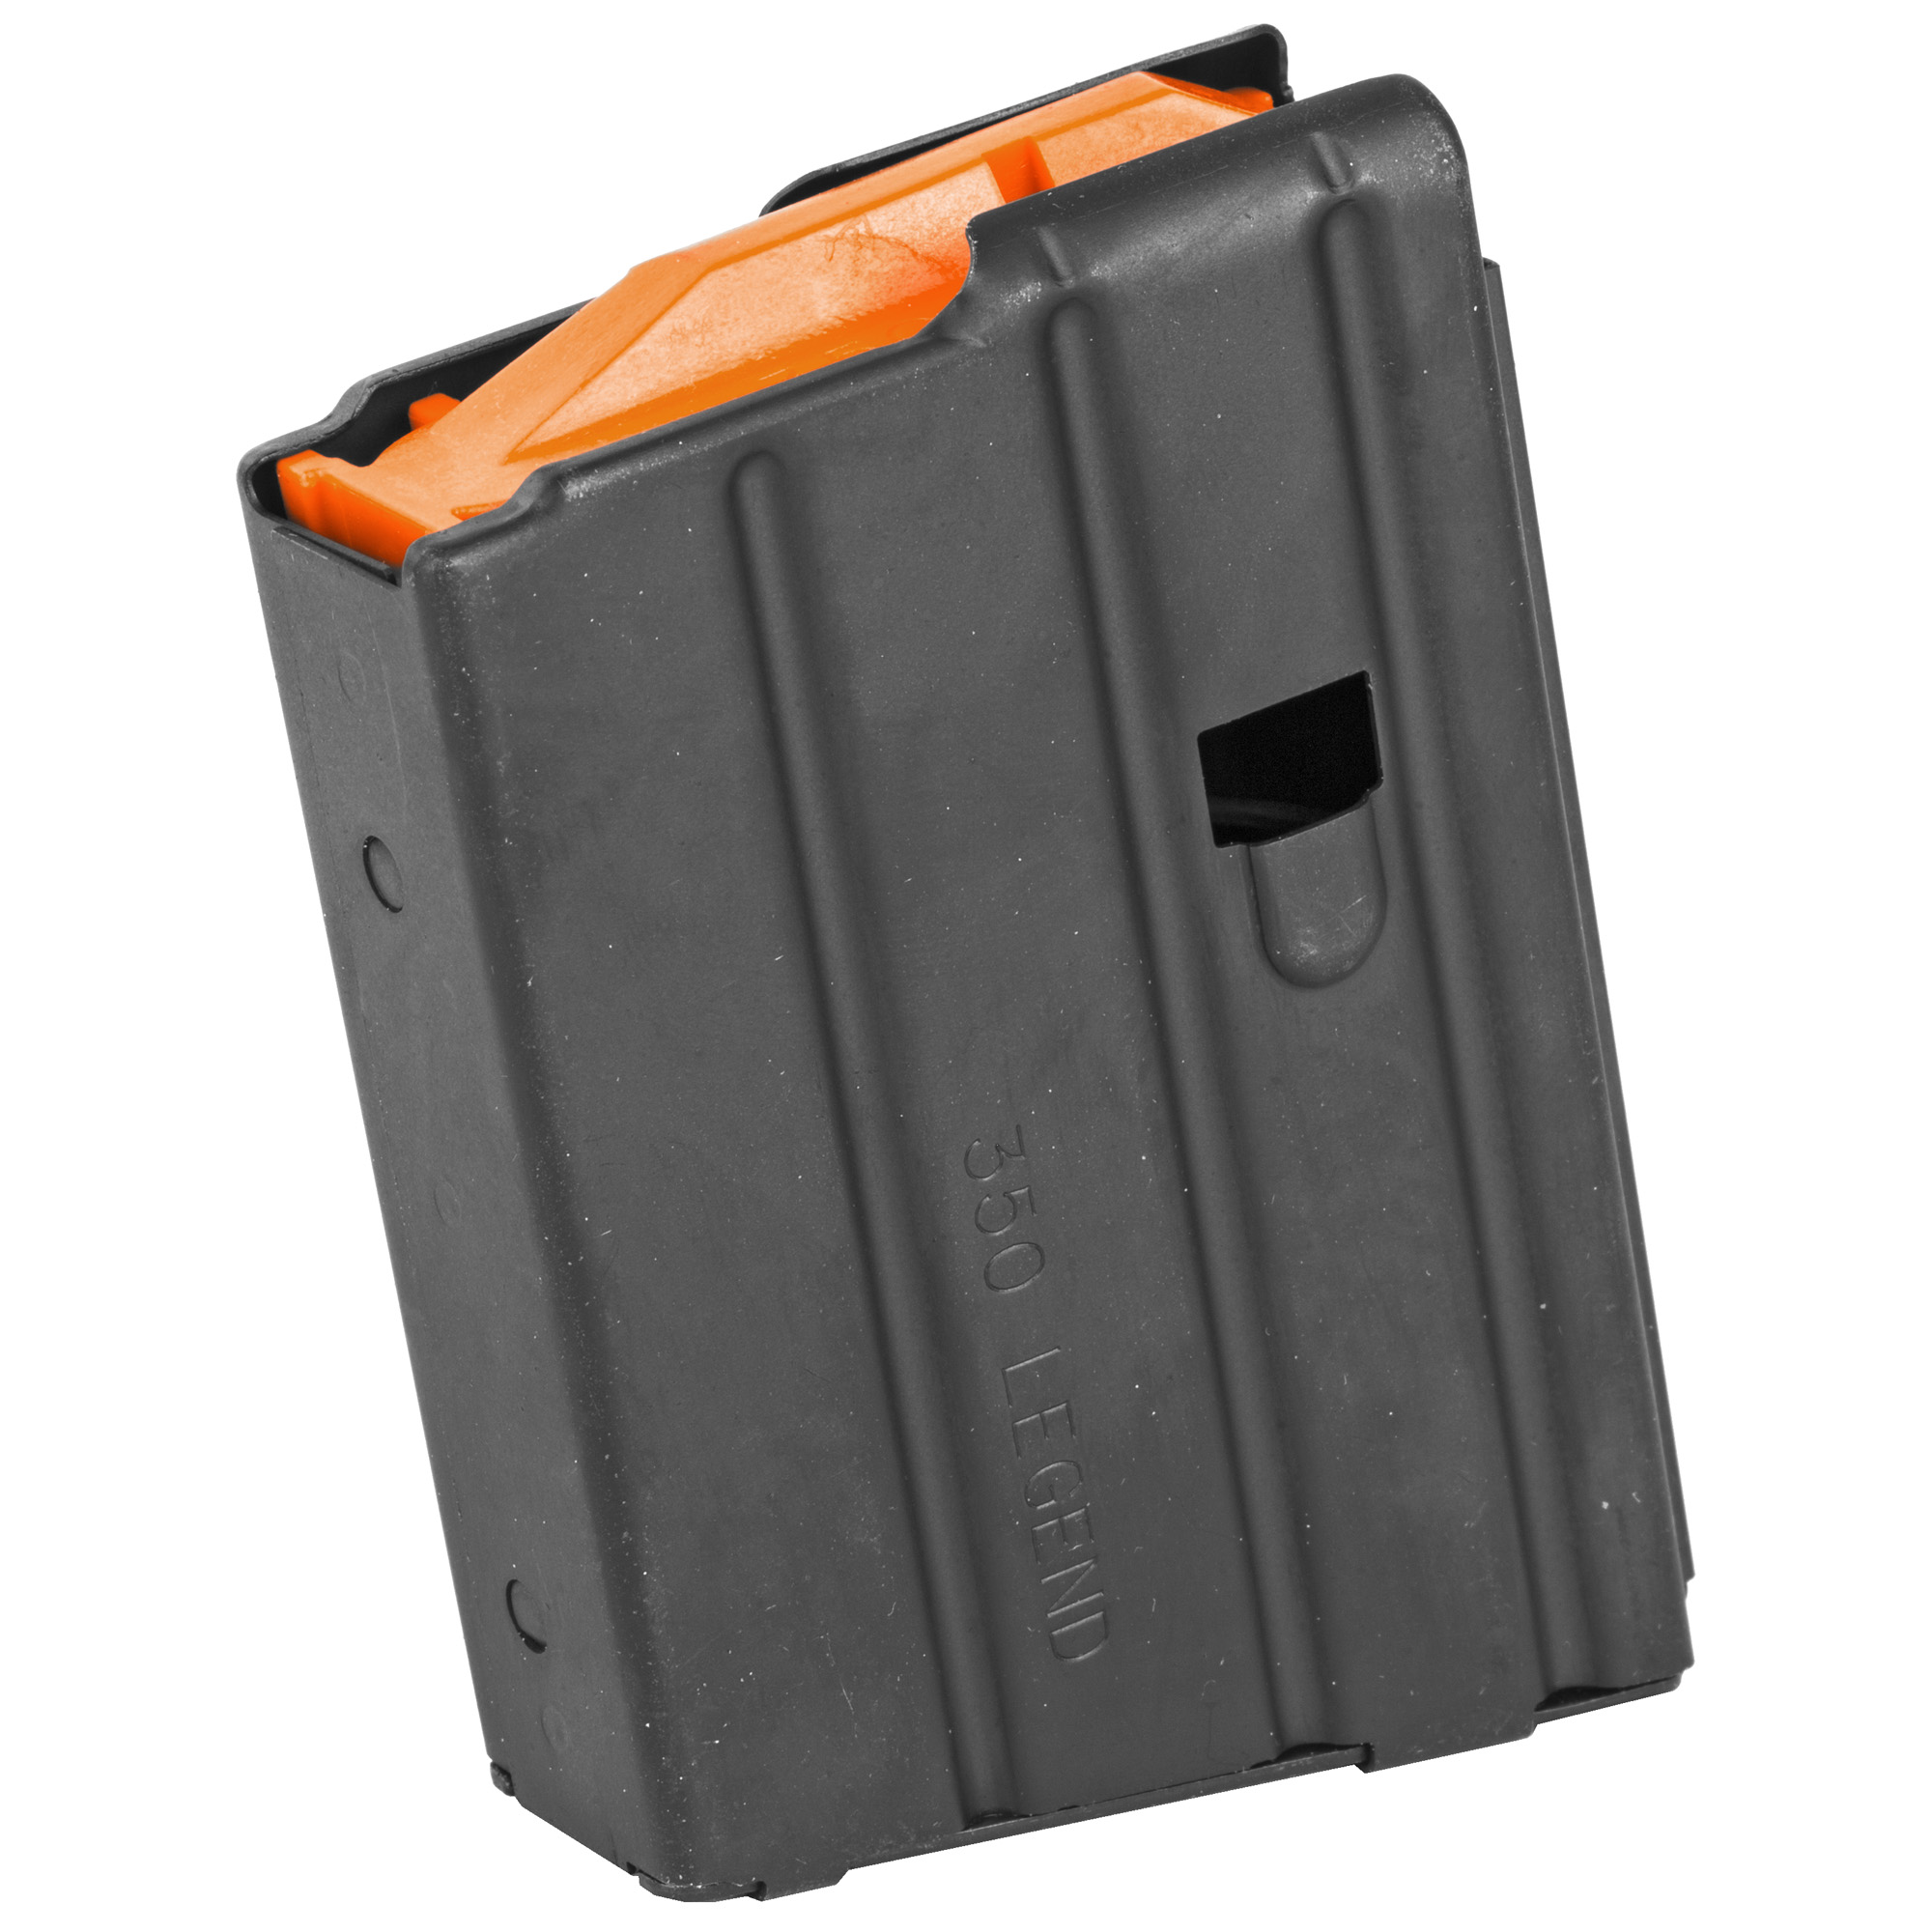 This CMMG Magazine is a standard factory replacement magazine that is designed for use with AR15's chambered in .350 Legend. It features a stainless steel body and holds 10 rounds of .350 Legend ammunition.